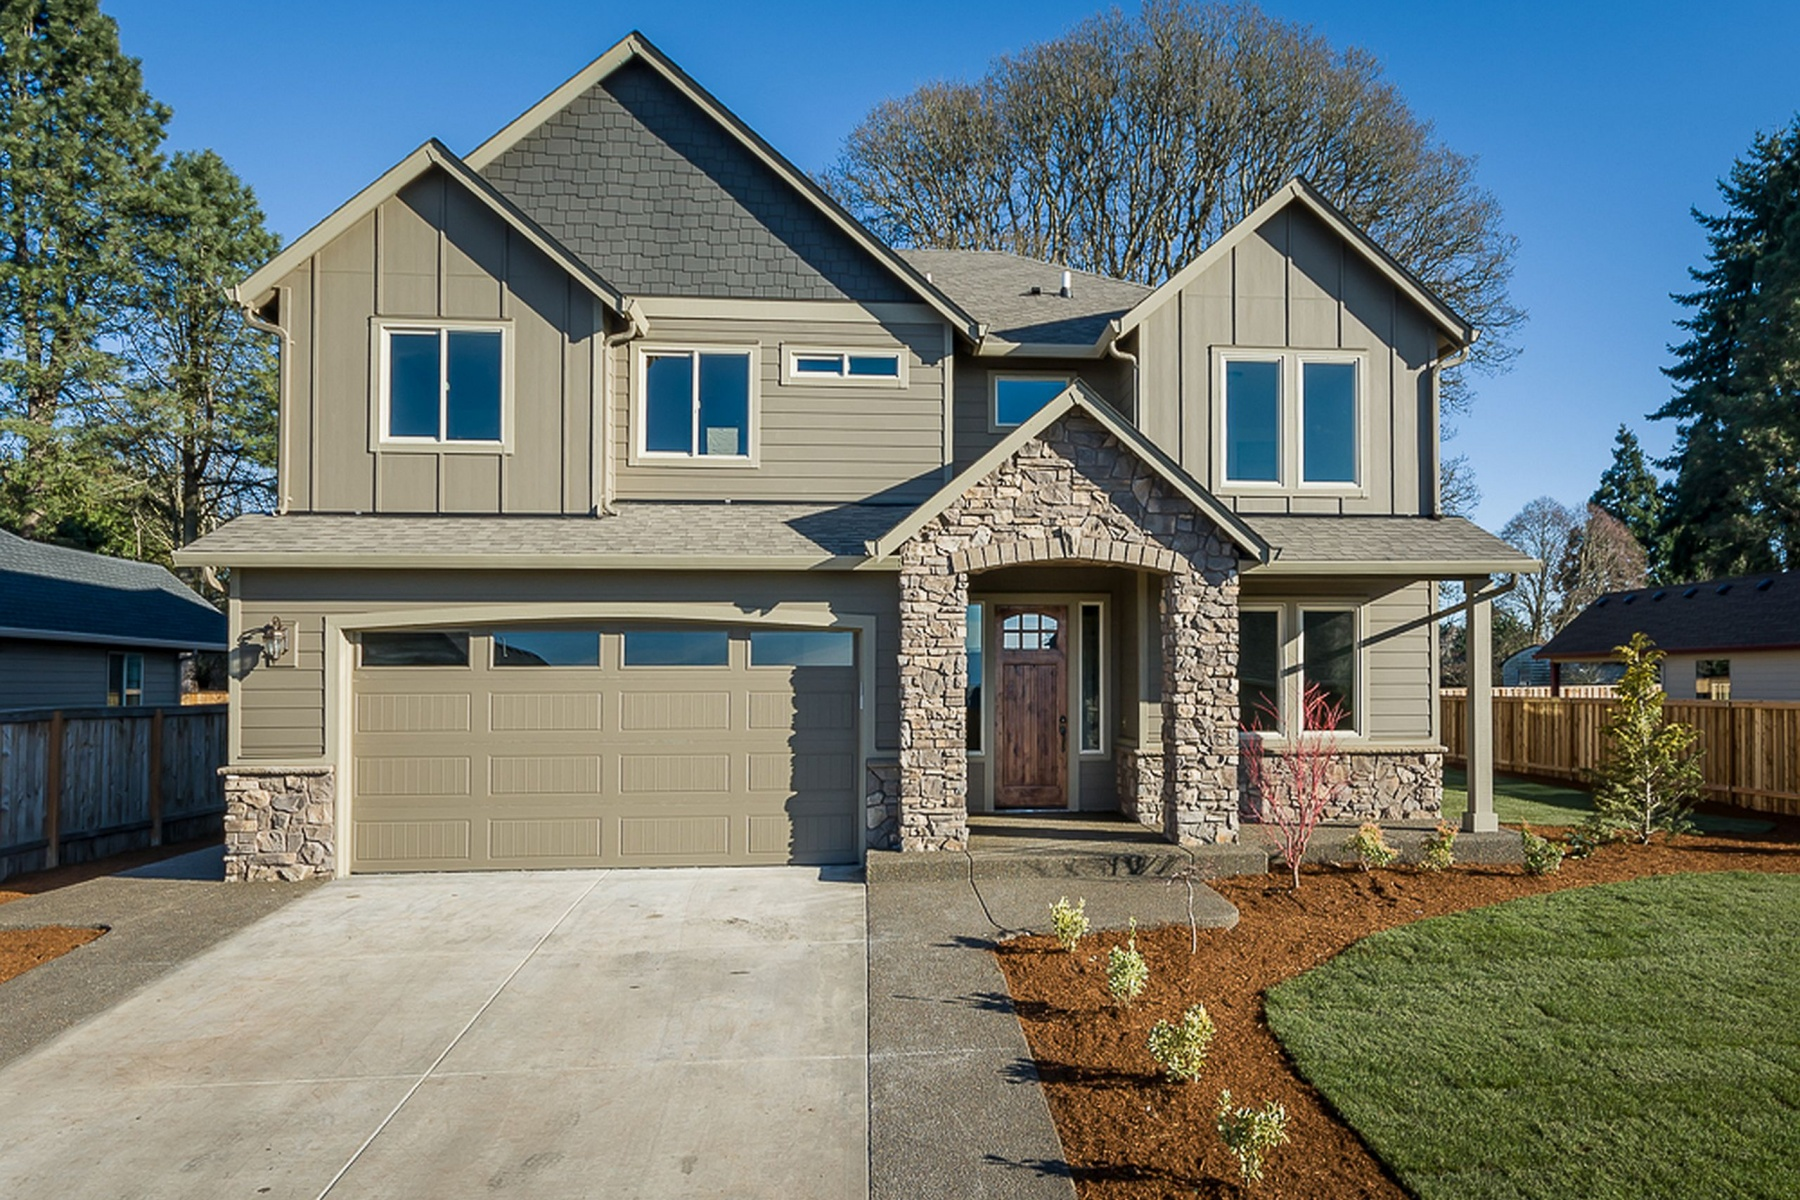 Single Family Home for Sale at Great Proposed 2 Story! 675 NW Ilwaco St Camas, Washington 98607 United States